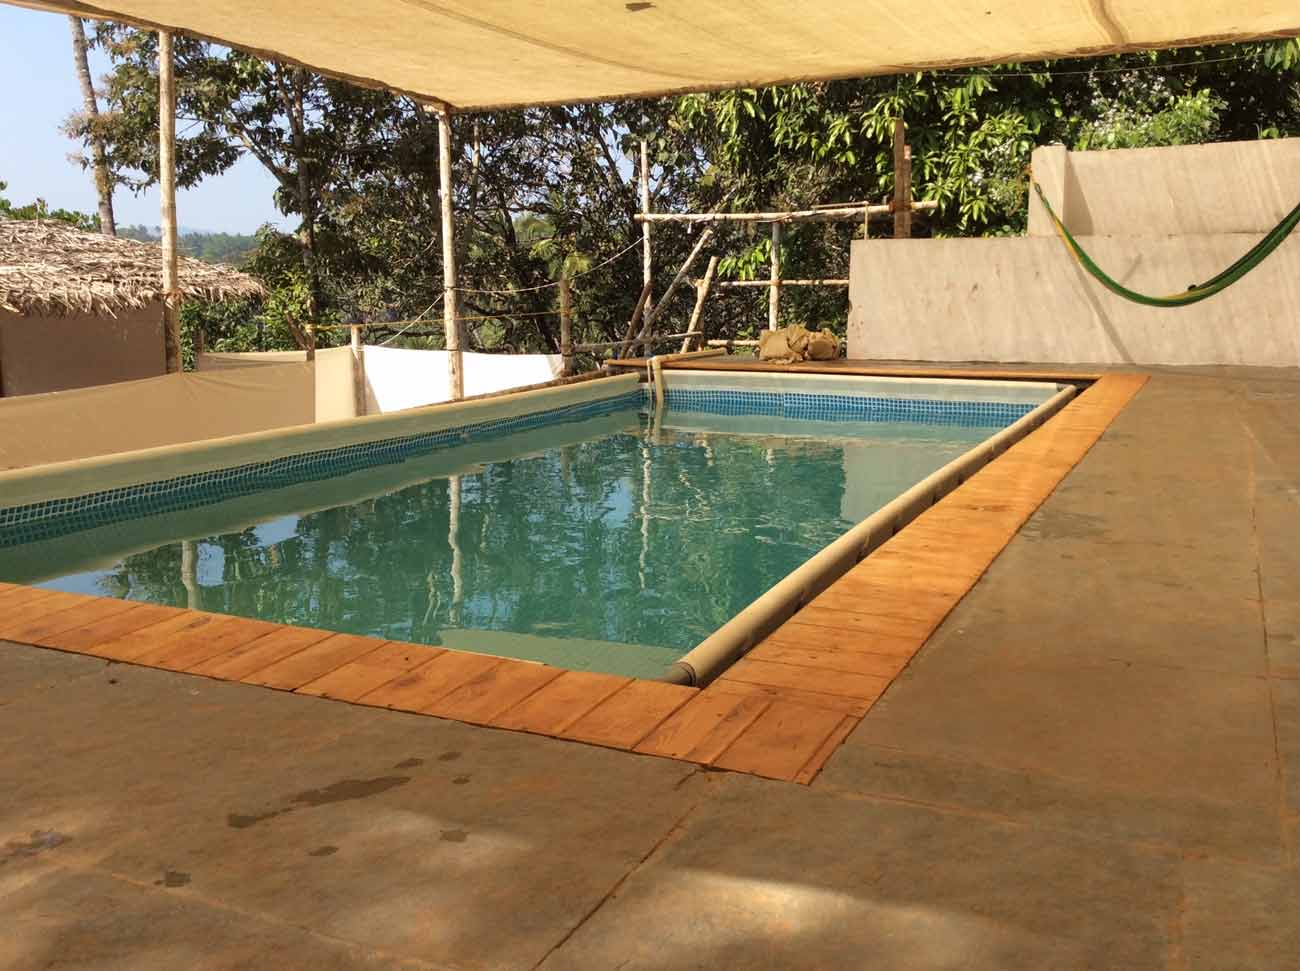 fluidsymmetry therapy pool building first pool build